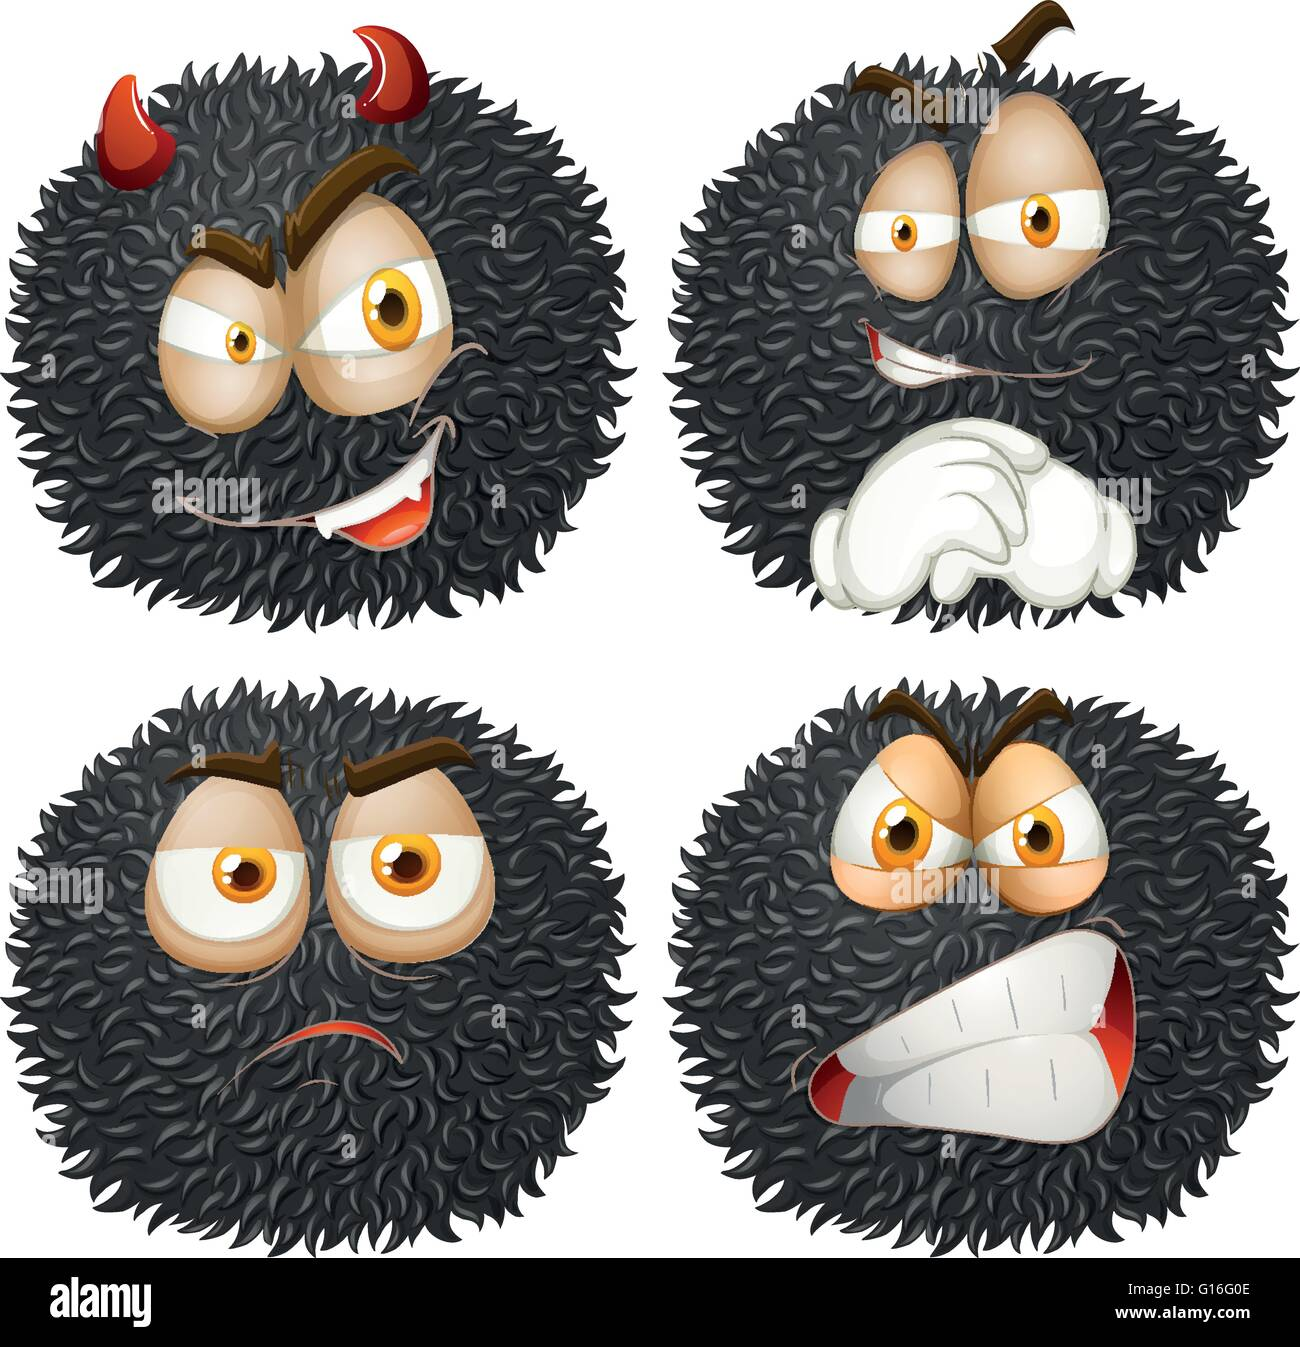 Facial expression on fluffy ball illustration - Stock Image